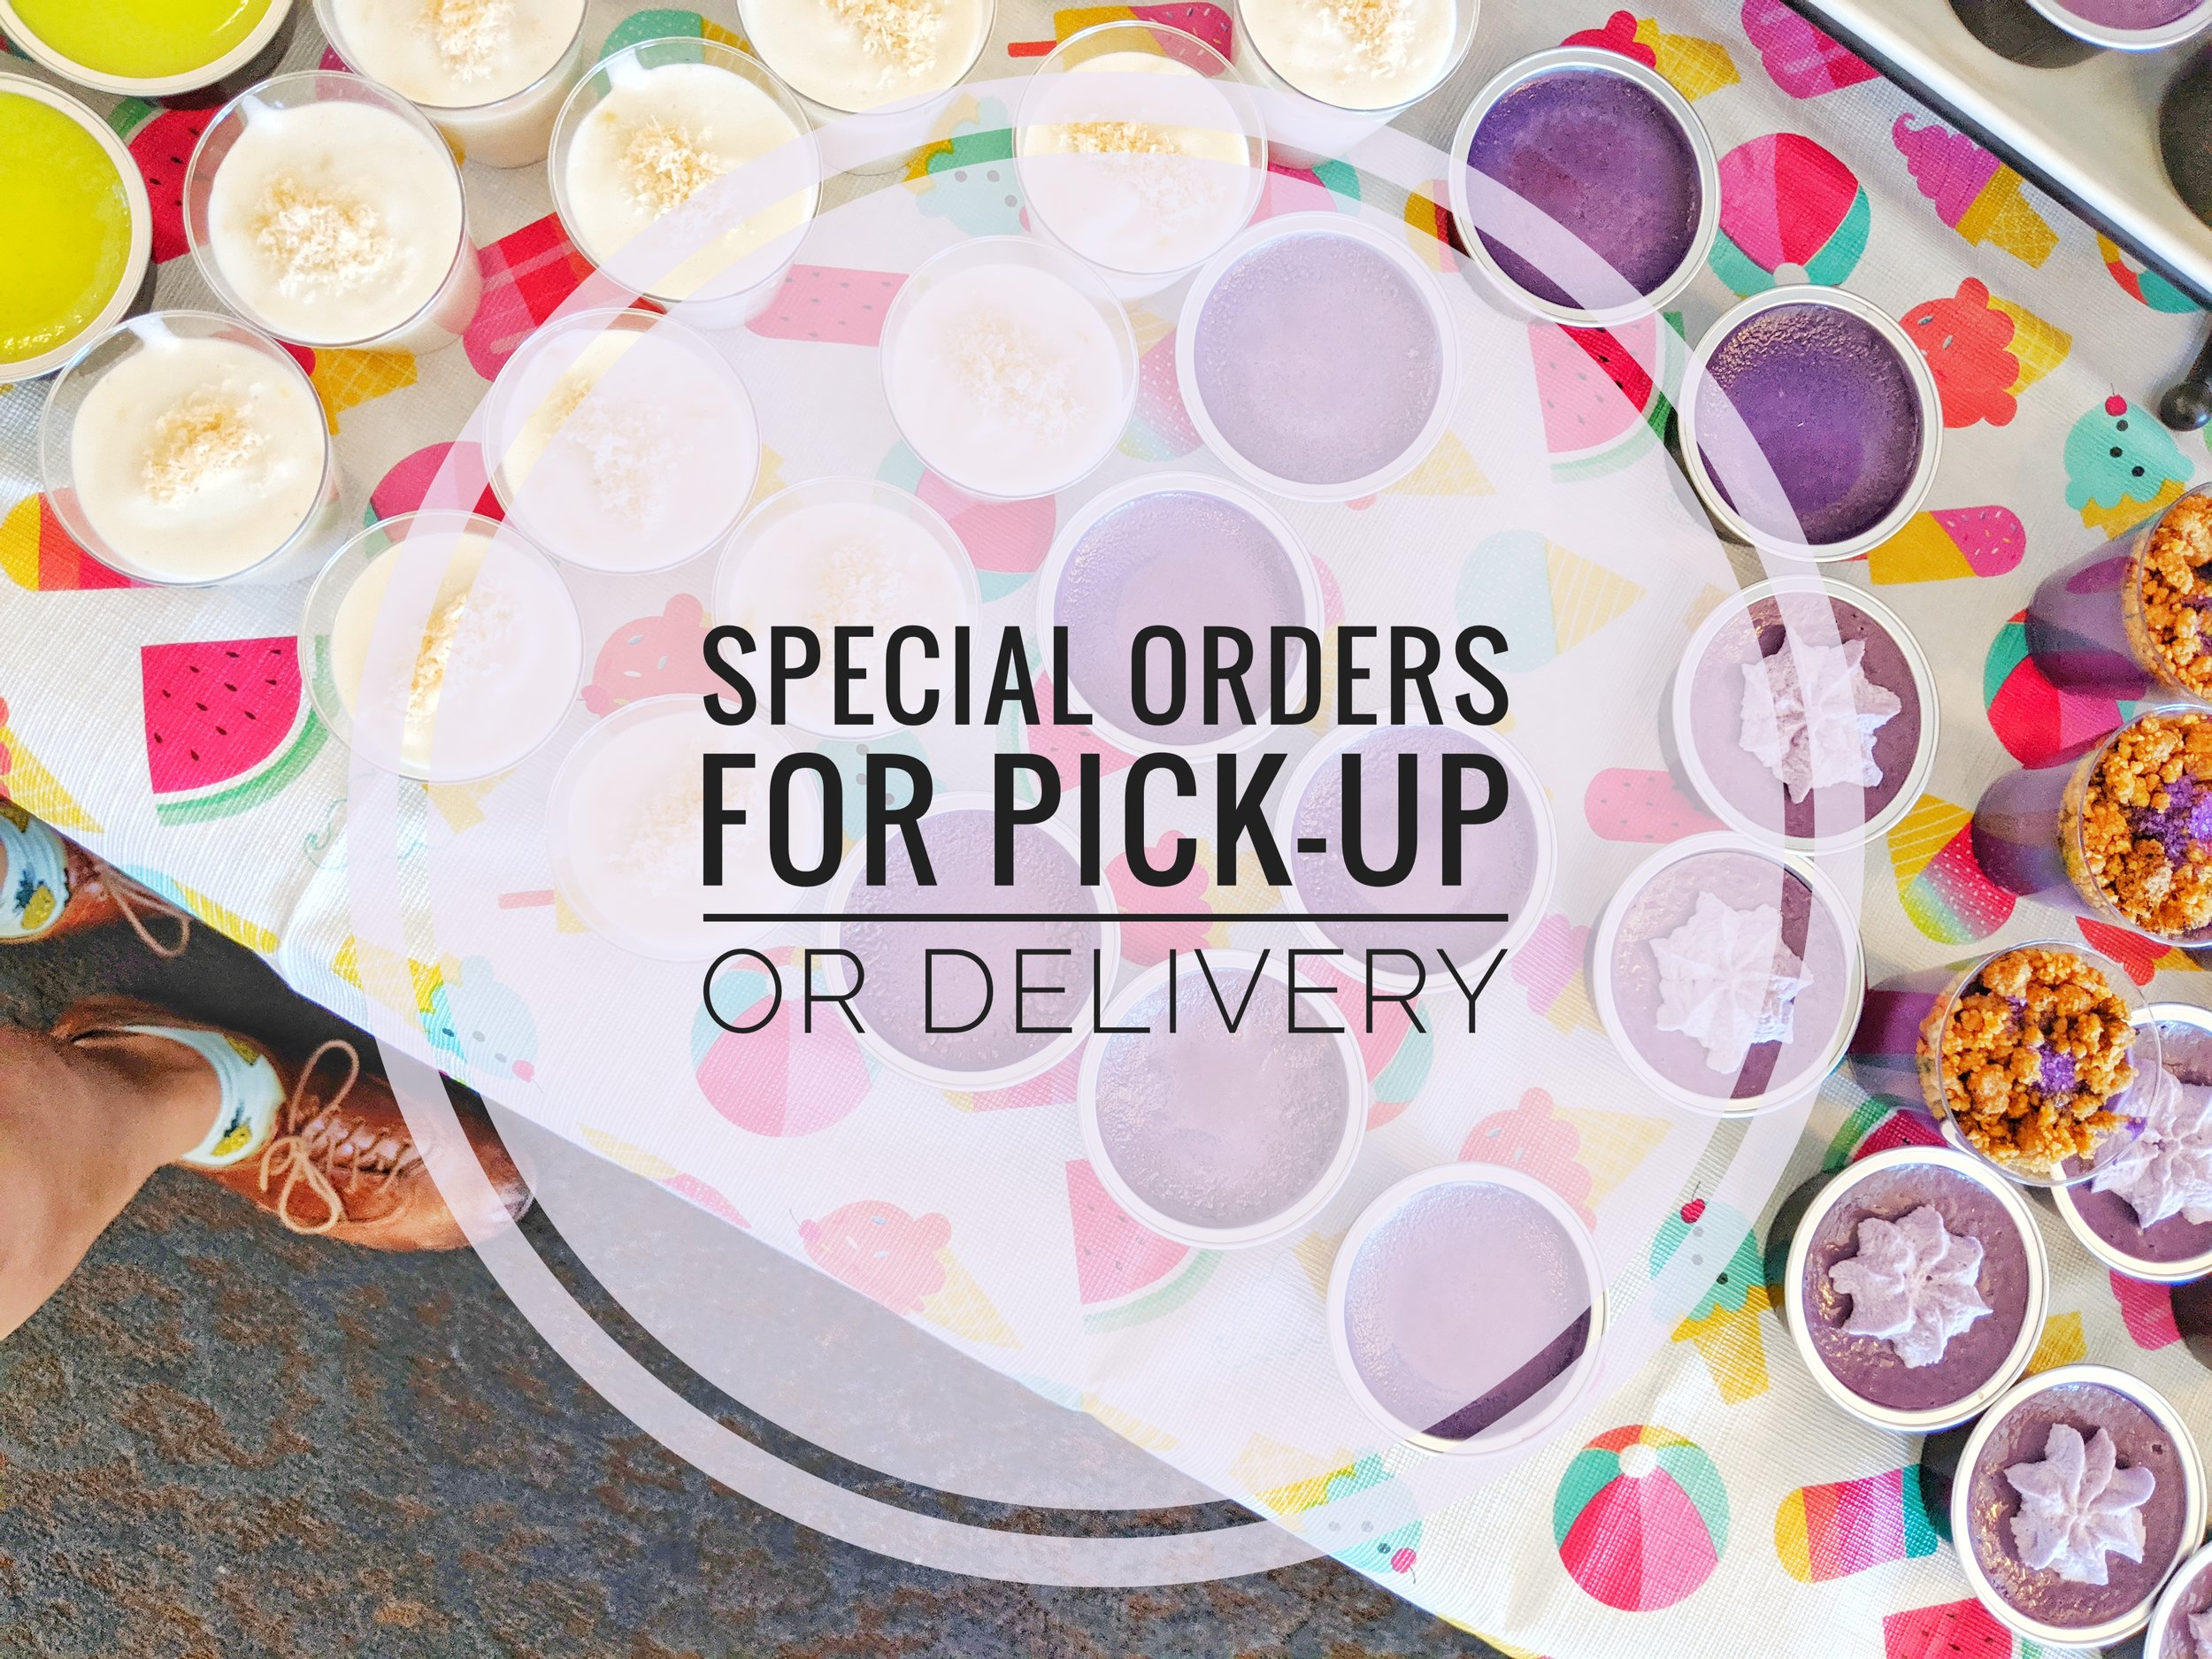 Place your order HERE for special items, events, and catering requests! For delivery and pick-up from our Sherman Oaks shop. (Please allow at least 72 hours for special orders.)